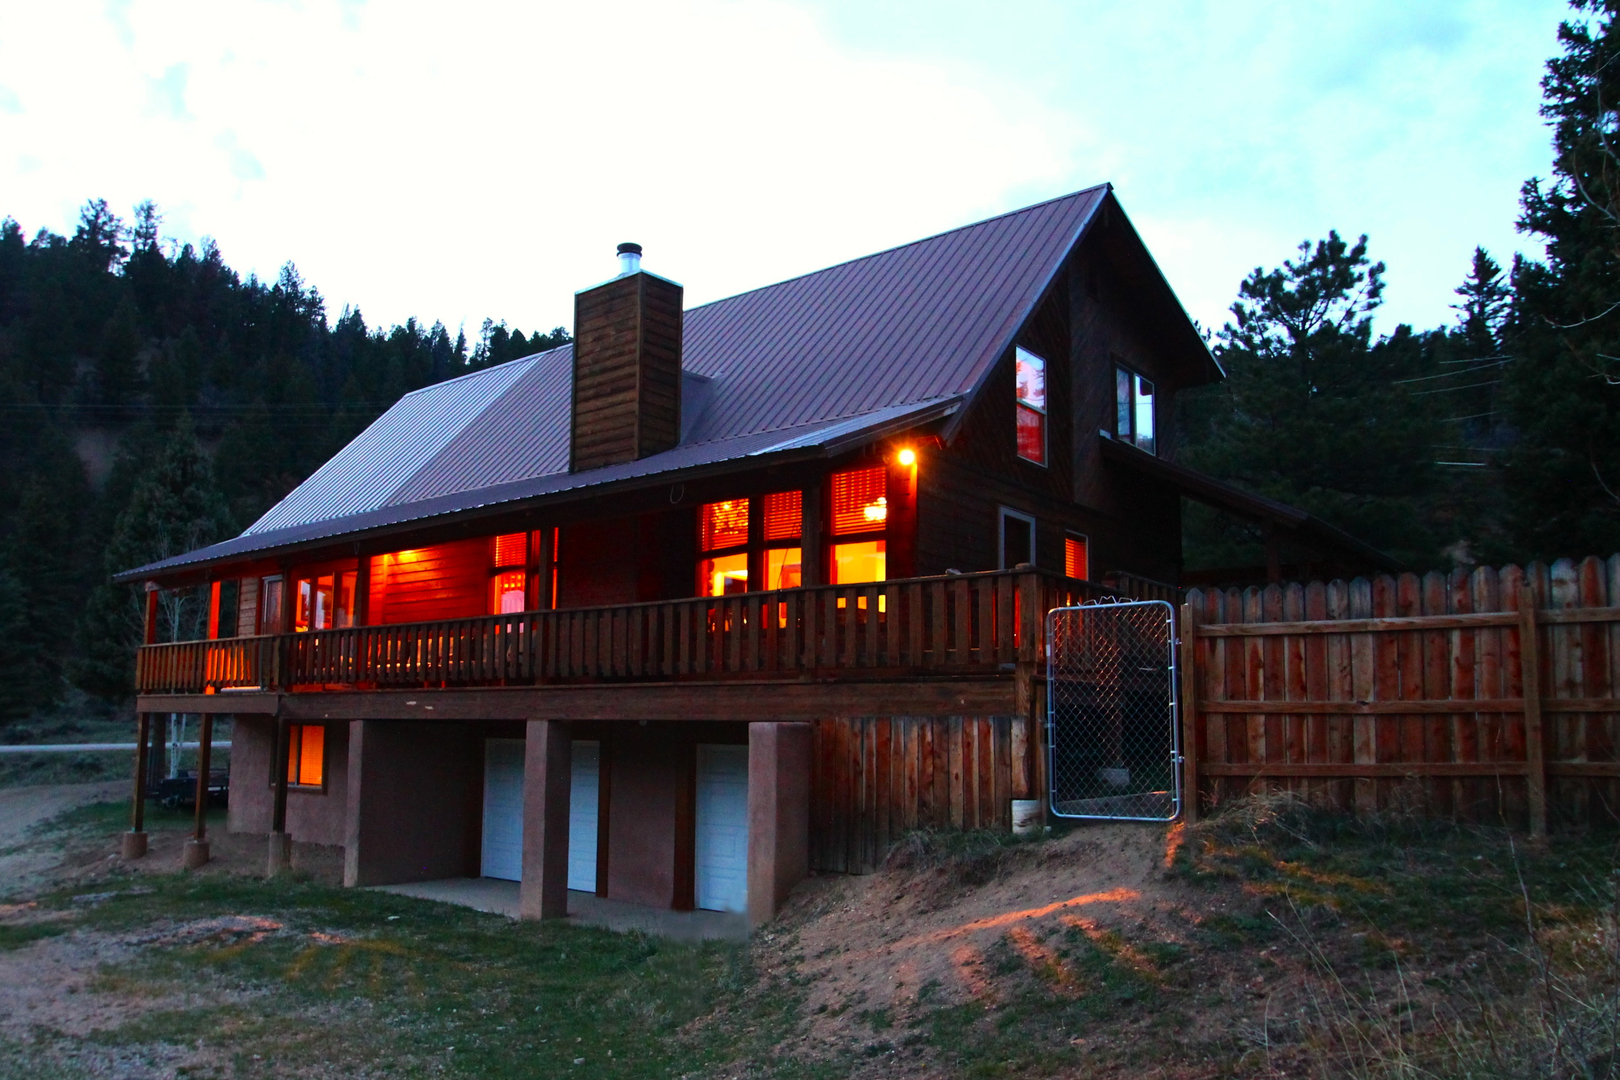 nm new for vacation united chalet mexico cabins states near cabin rentals copper in ski rent river red creek